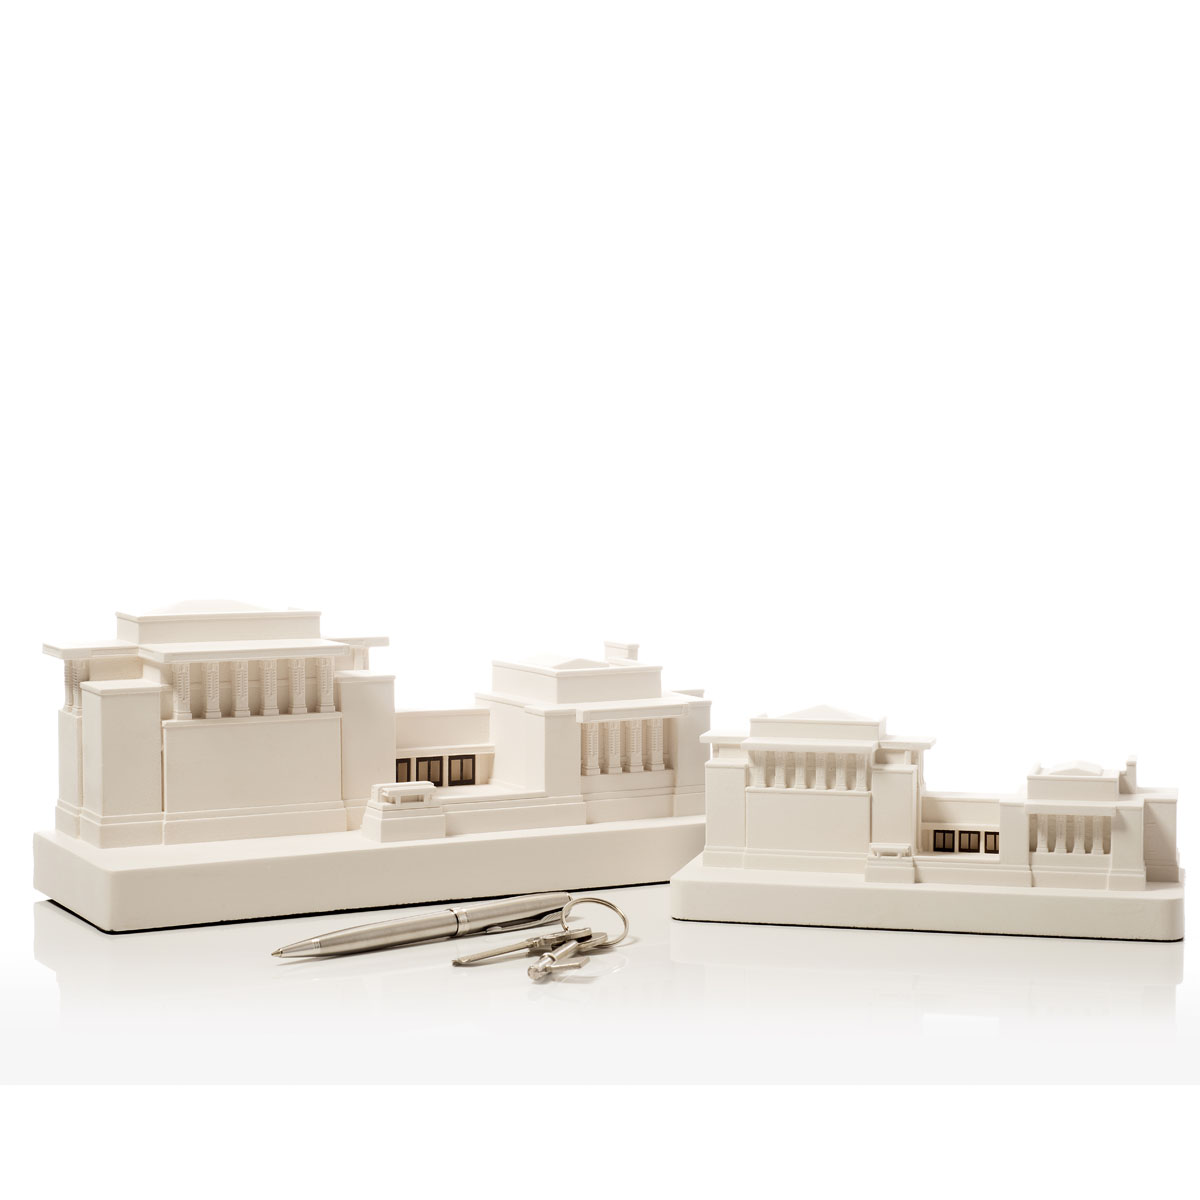 Unity Temple Model. Product Shot Side View. Architectural Sculpture by Chisel & Mouse